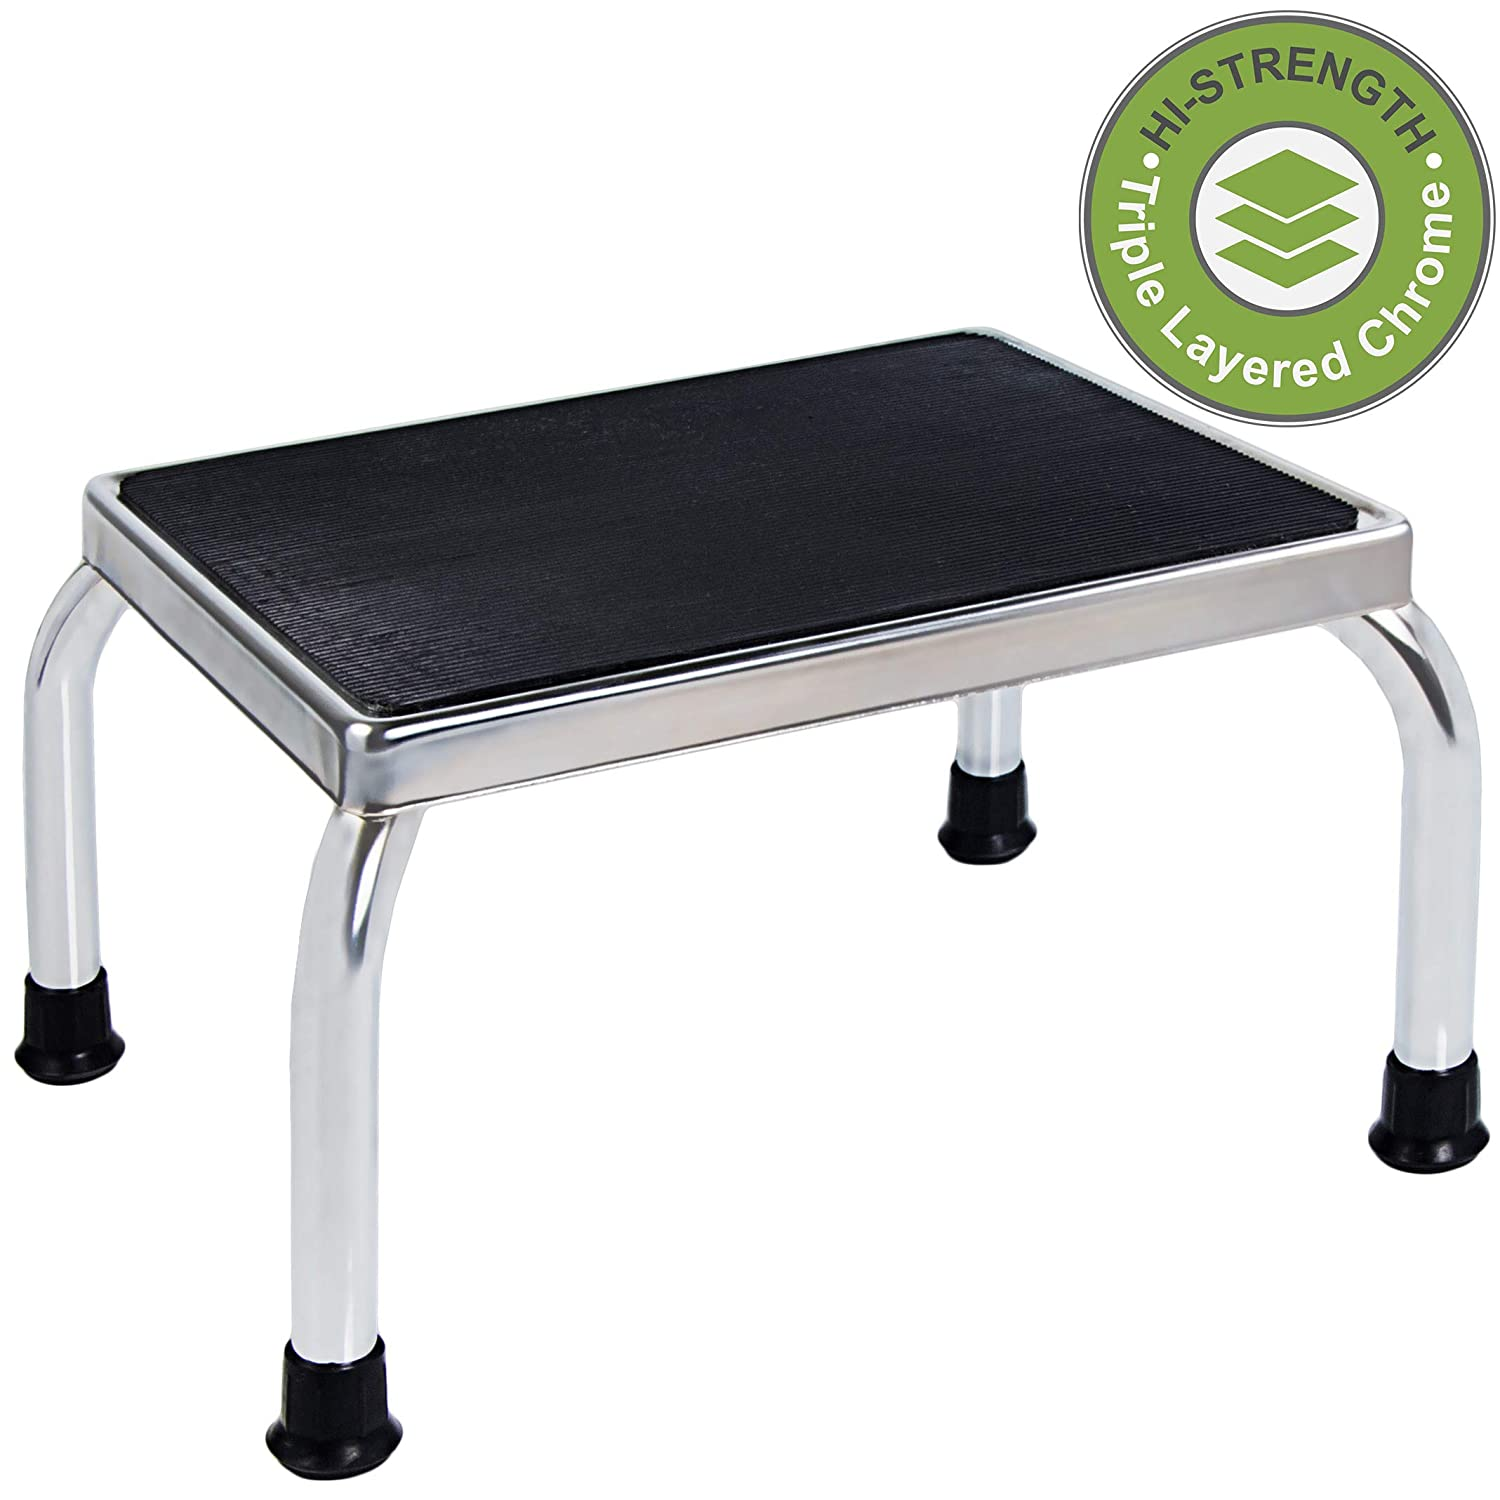 Groovy Medical Foot Step Stool With Anti Skid Rubber Platform Lightweight And Sturdy Chrome Stool For Children And Adults Evergreenethics Interior Chair Design Evergreenethicsorg